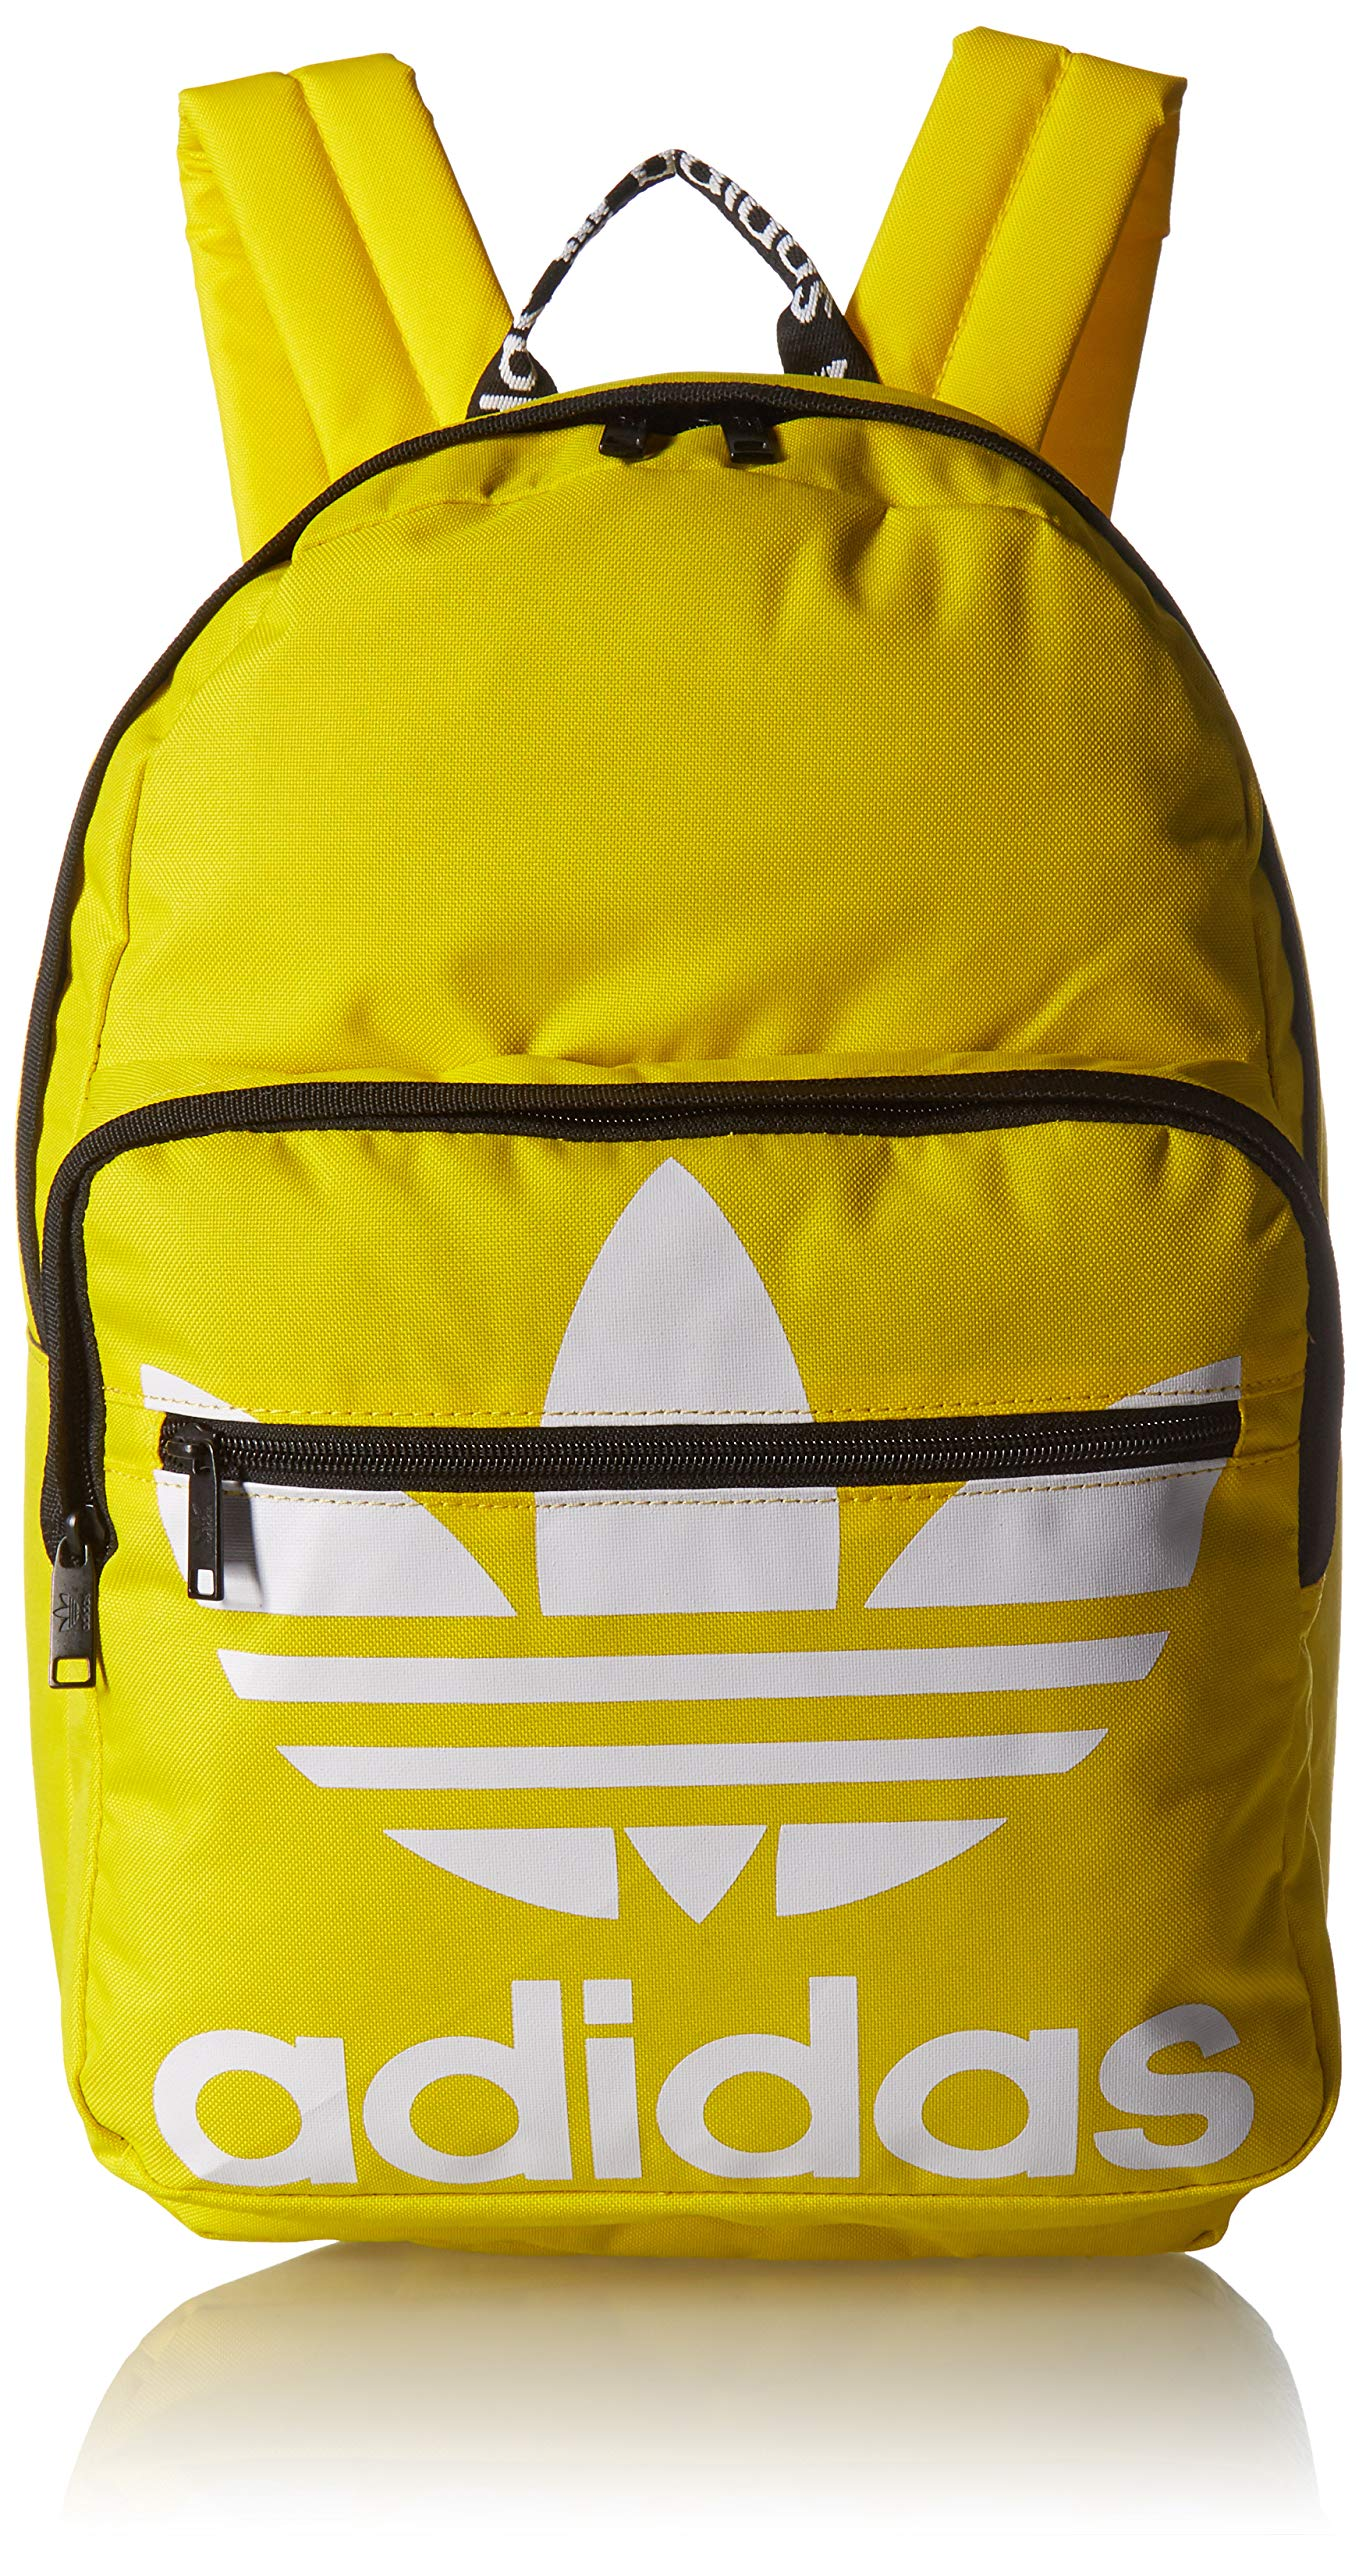 adidas Originals Unisex Trefoil Pocket Backpack, Yellow, ONE SIZE by adidas Originals